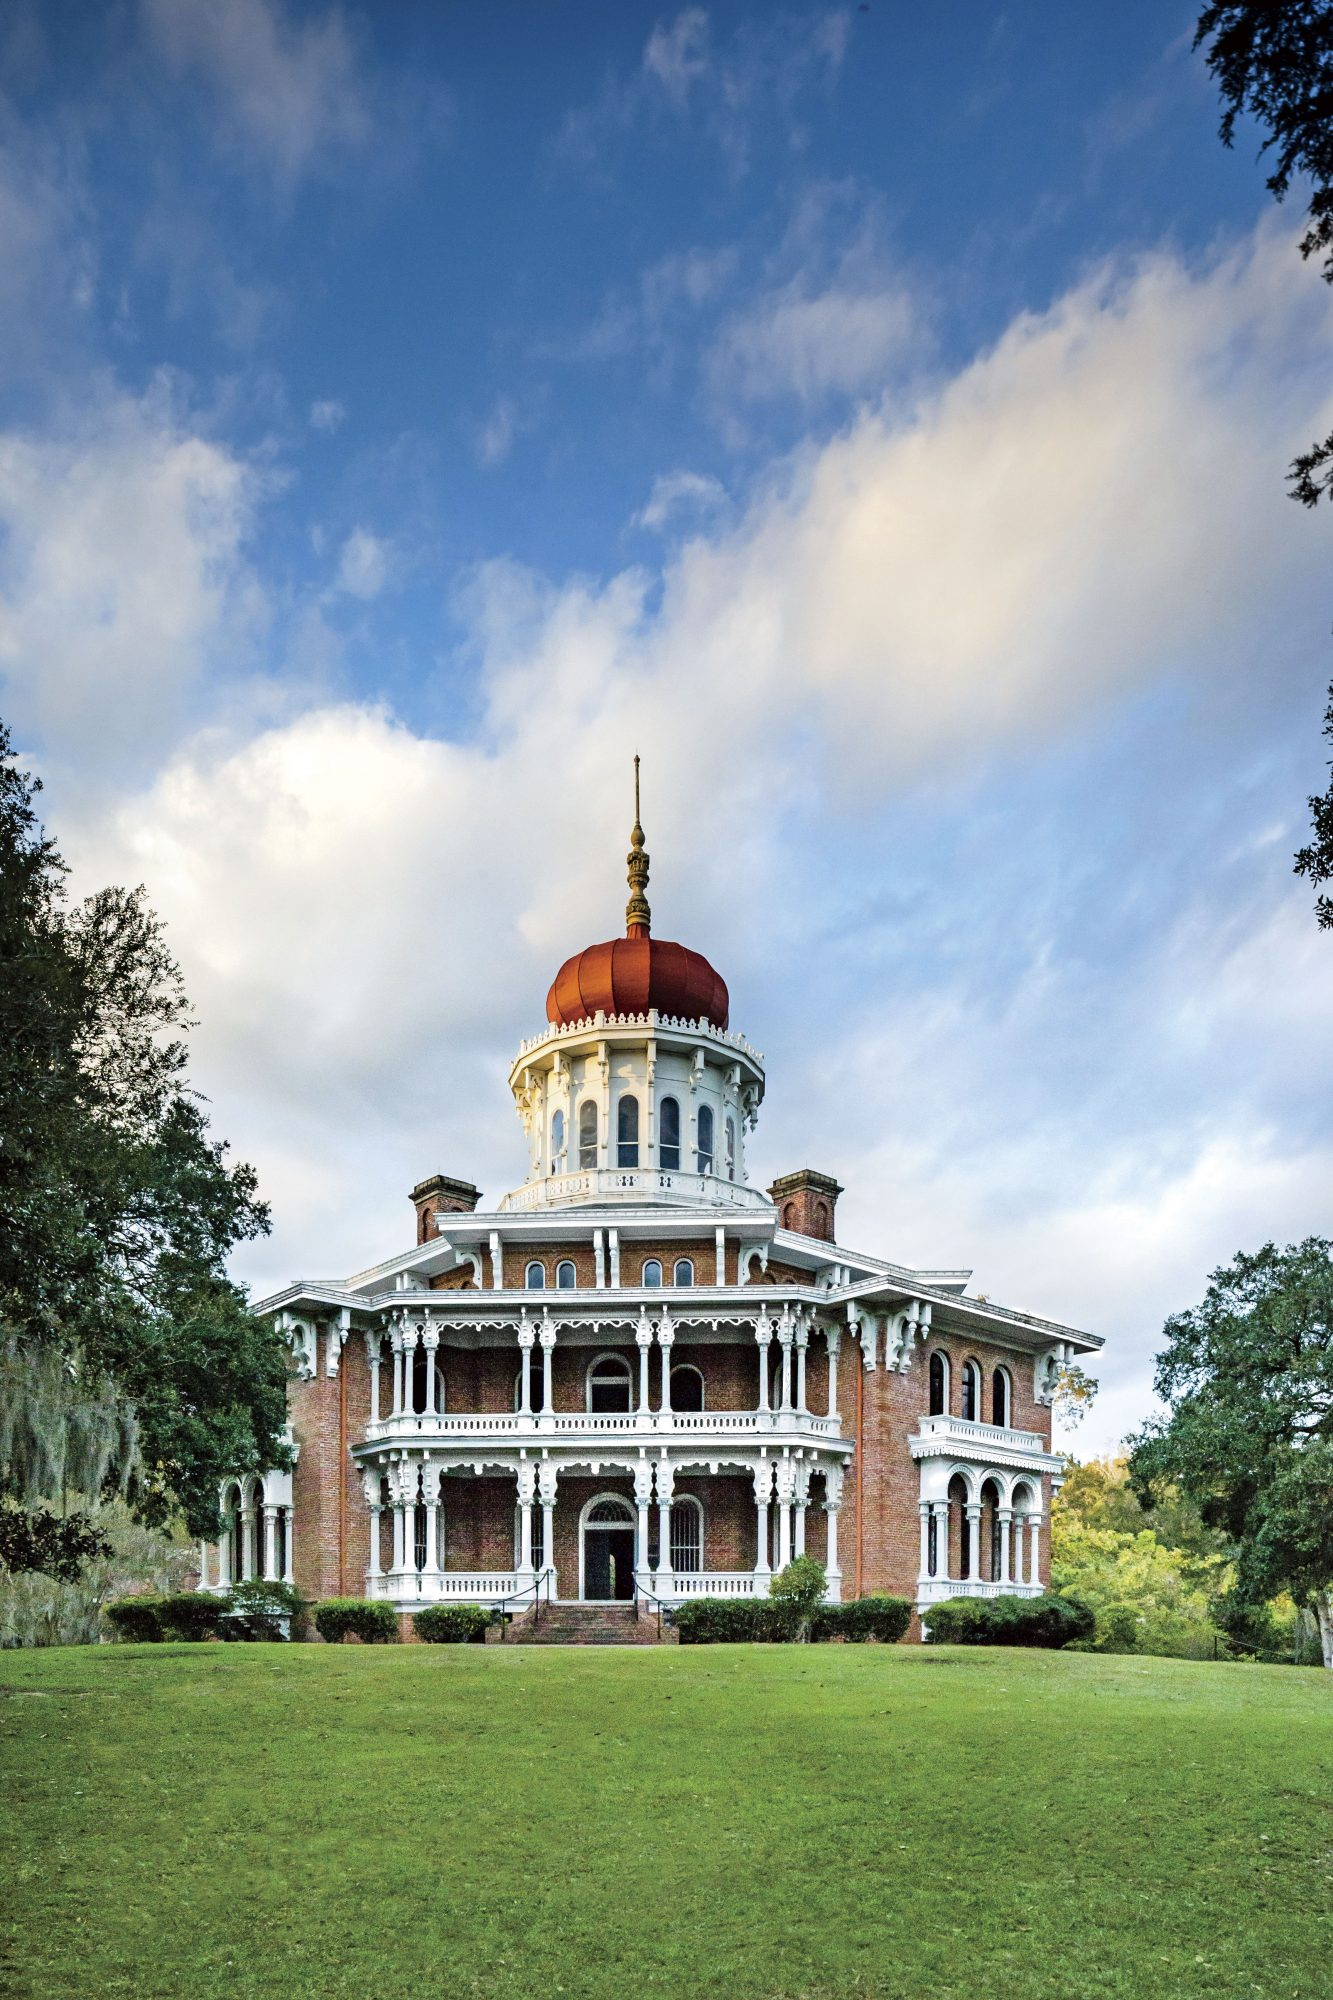 Longwood in Natchez, MS